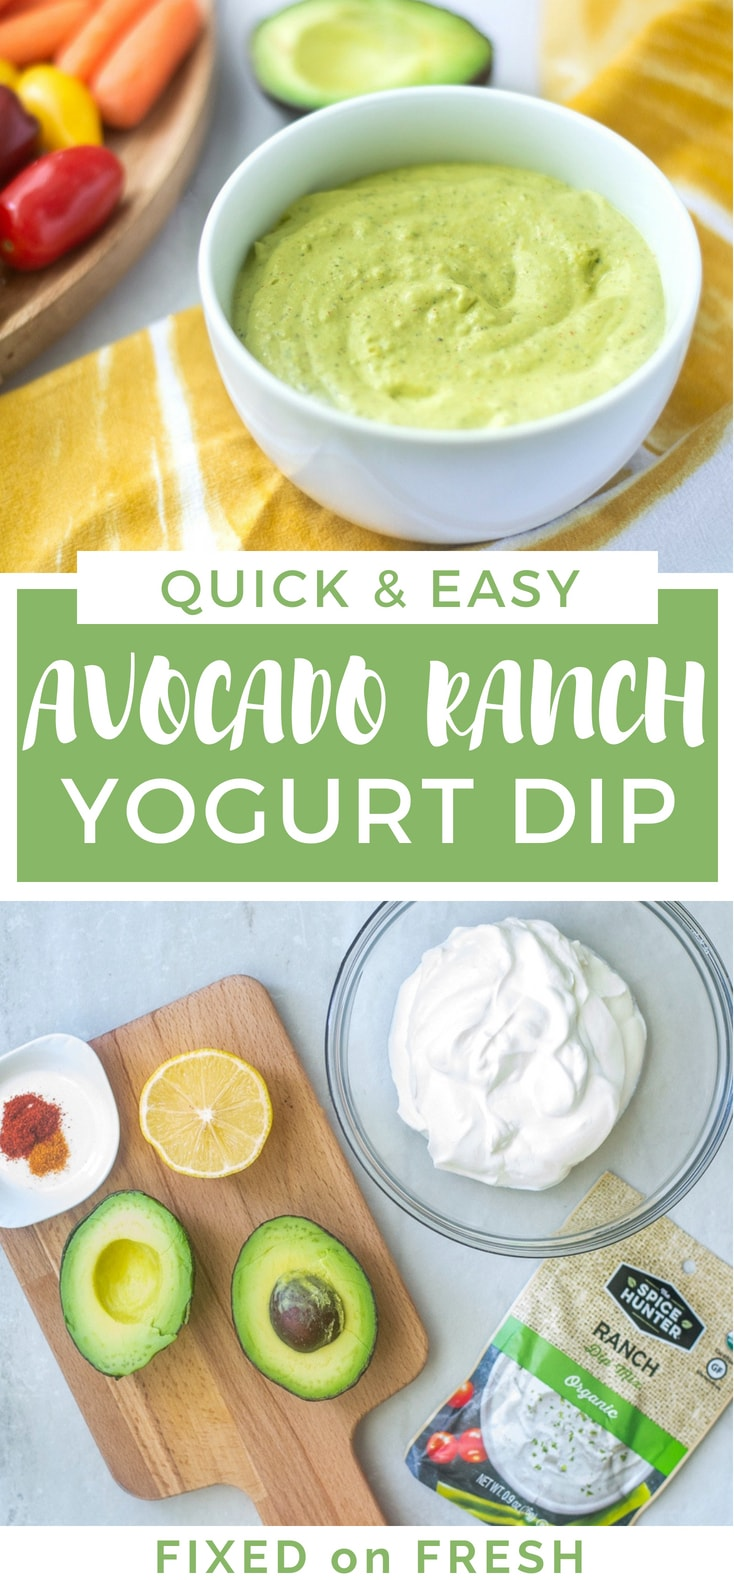 Spicy Avocado Ranch Yogurt Dip is quick and easy to make and a healthier version of your typical ranch dip. This low calorie appetizer is great to take to football parties or enjoy with your favorite veggies.